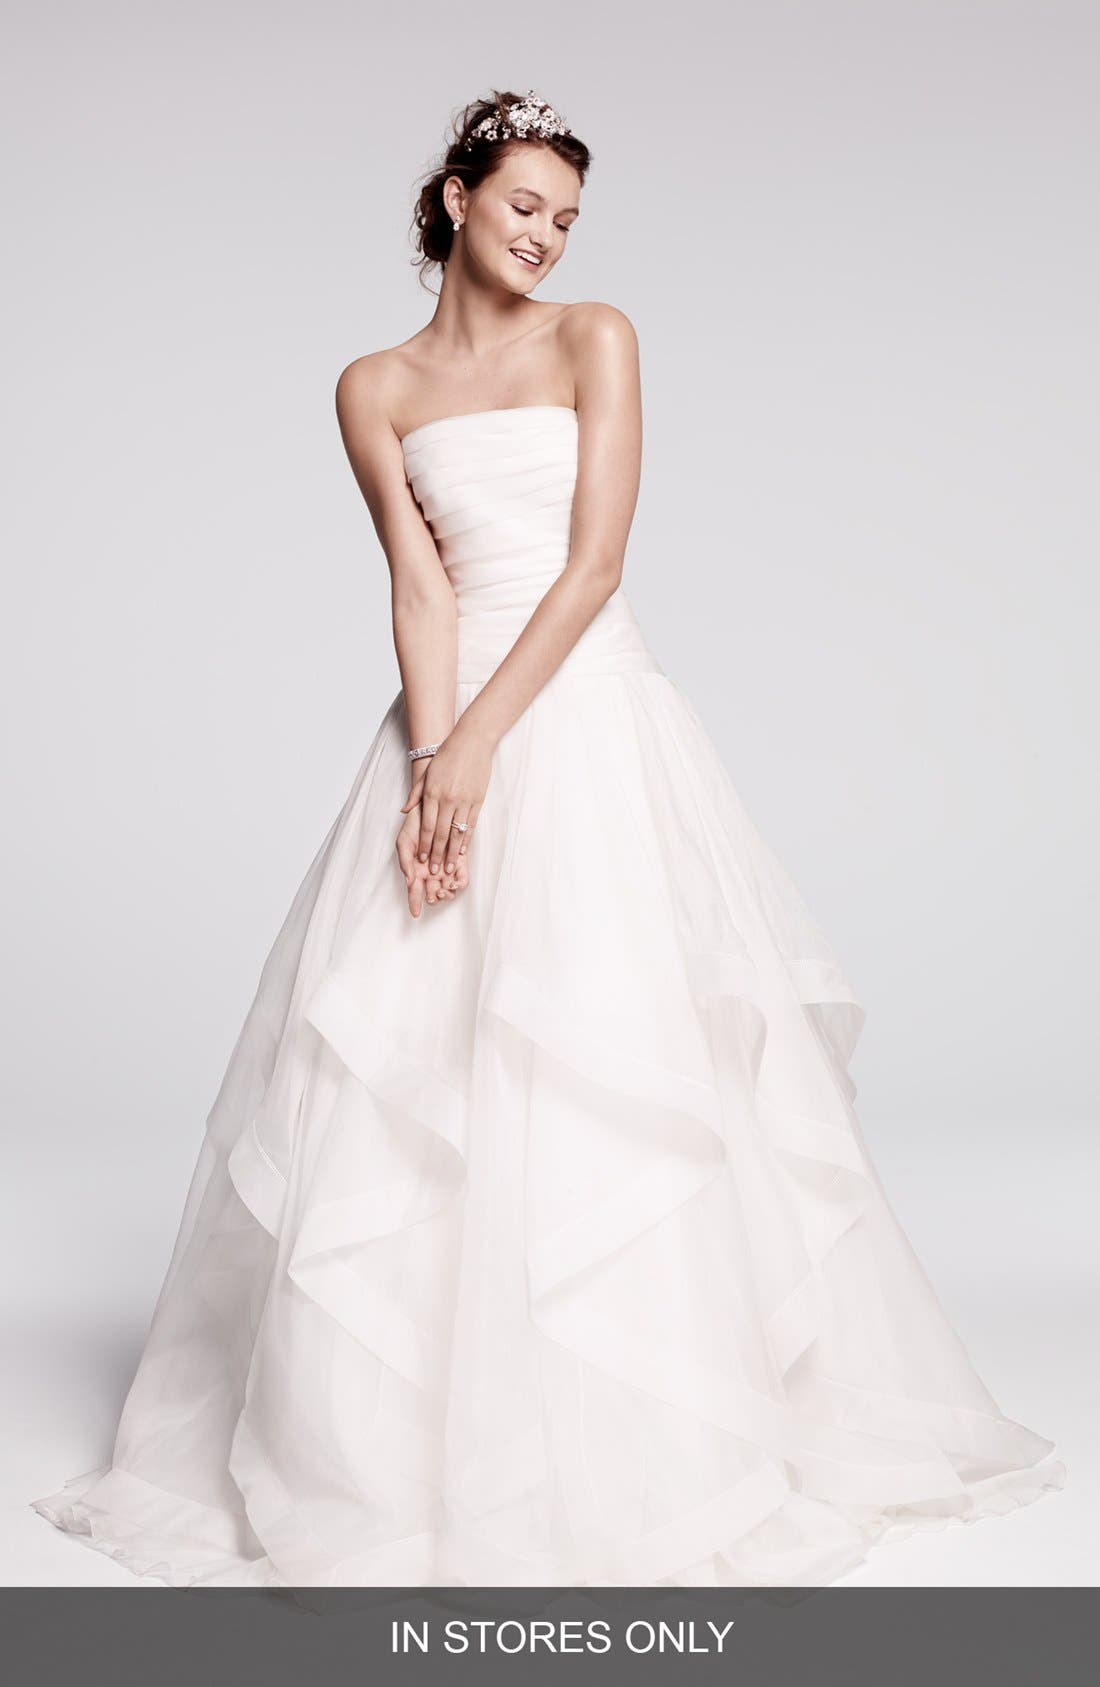 Alternate Image 1 Selected - Rosa Clara 'Cava' Tiered Silk Organza Ballgown (In Stores Only)